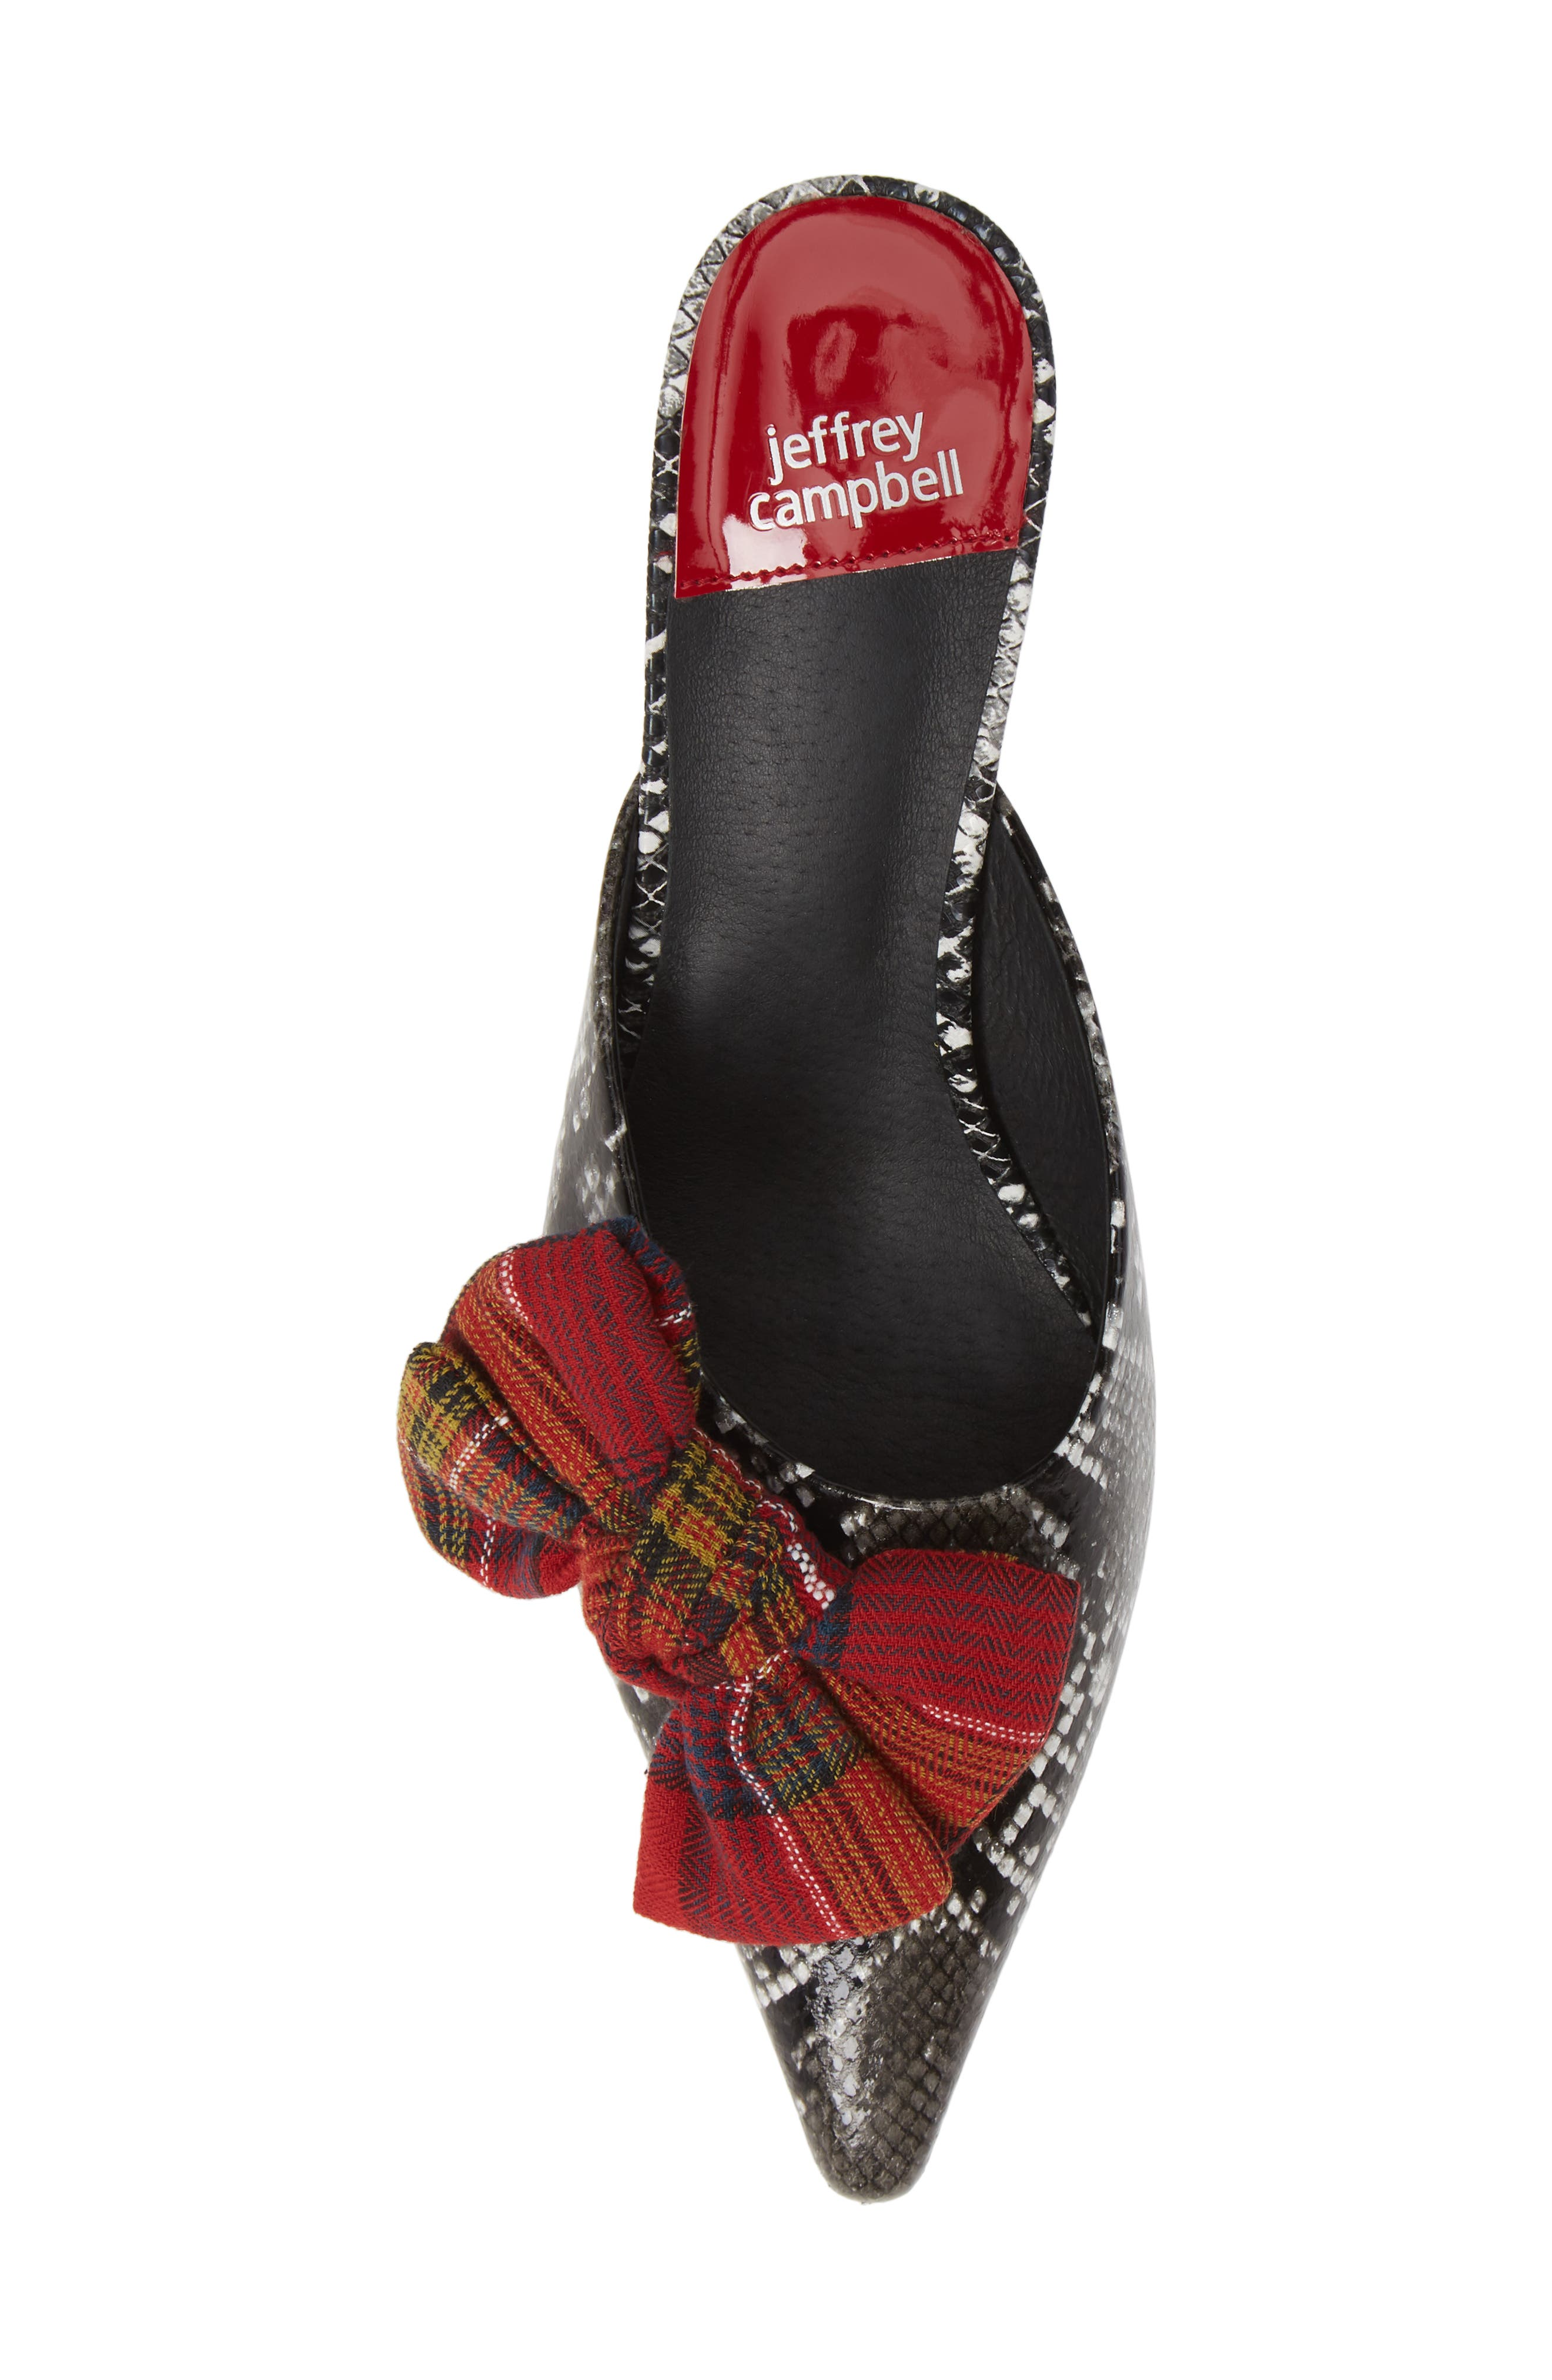 JEFFREY CAMPBELL, Adorn Pointy Toe Mule, Alternate thumbnail 5, color, GREY BLACK SNAKE / RED PLAID